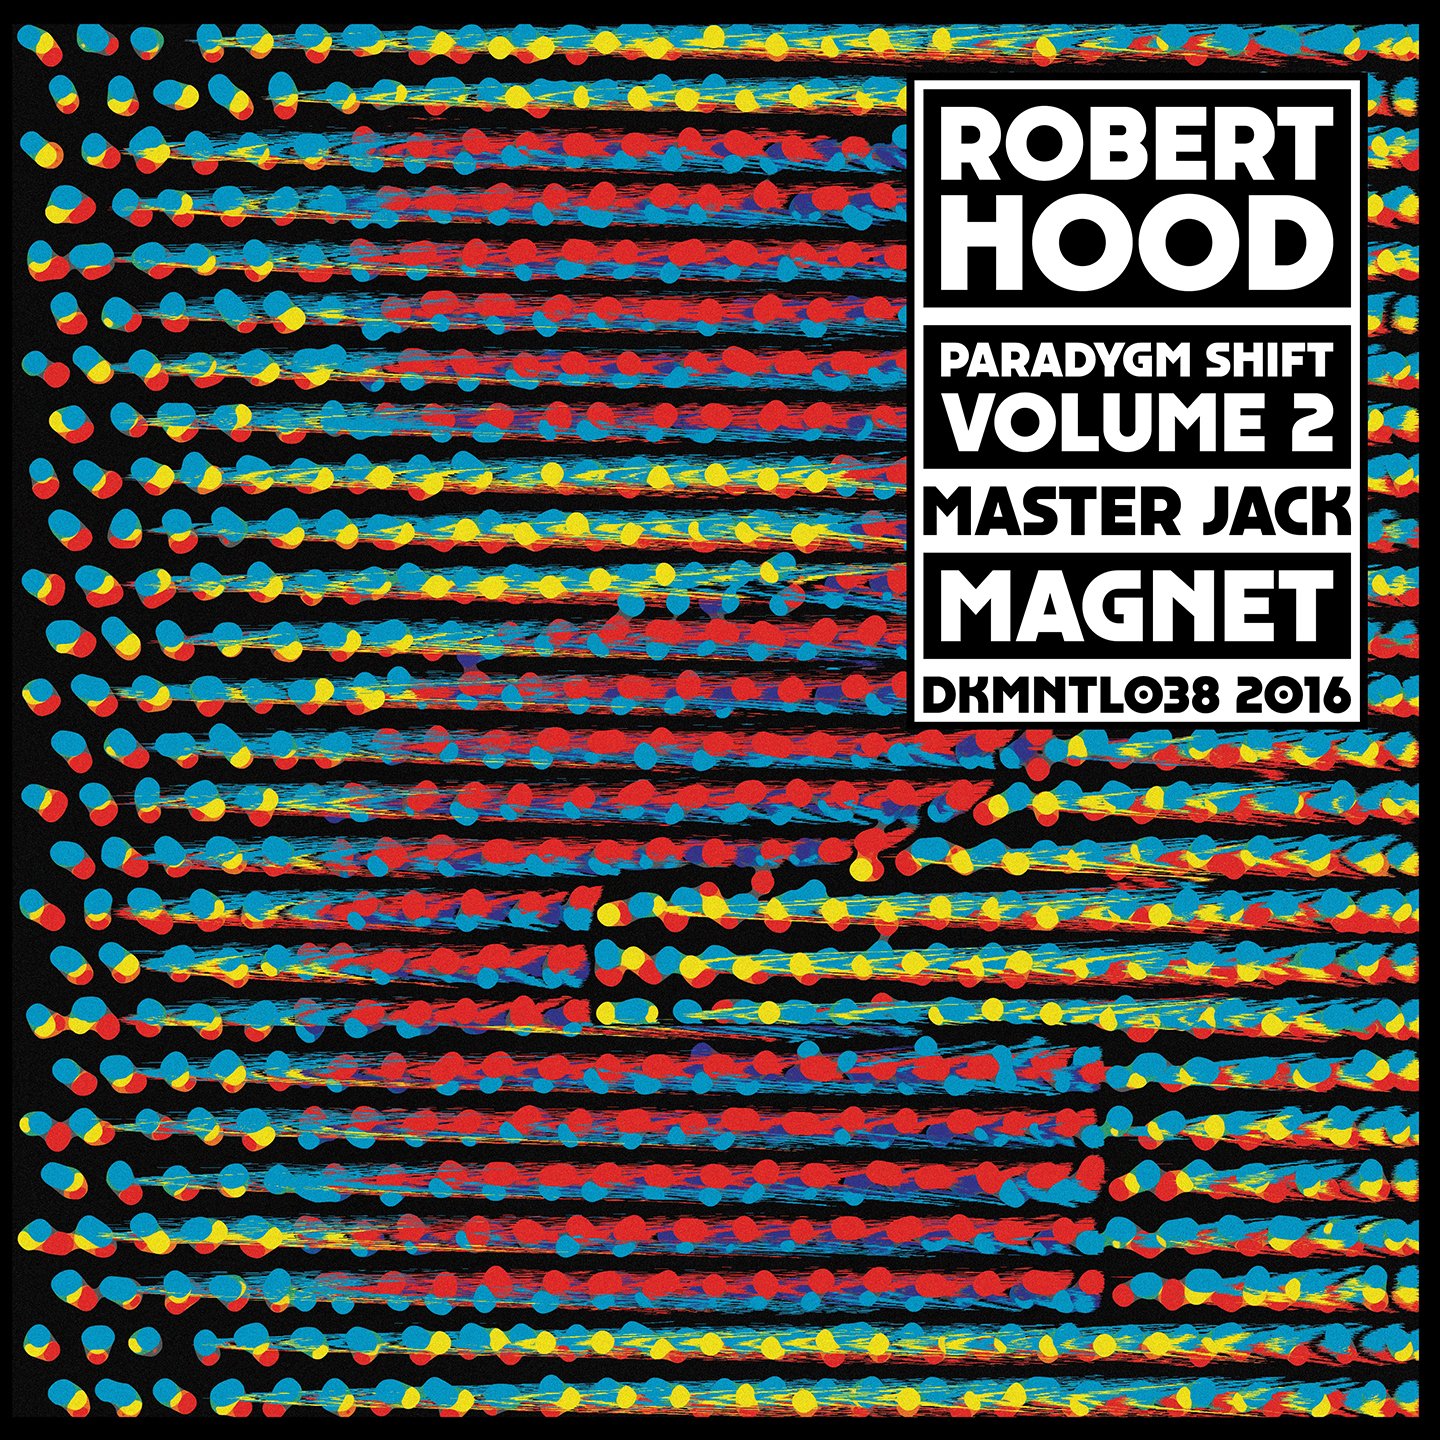 Robert Hood - Paradygm Shift Vol. 2